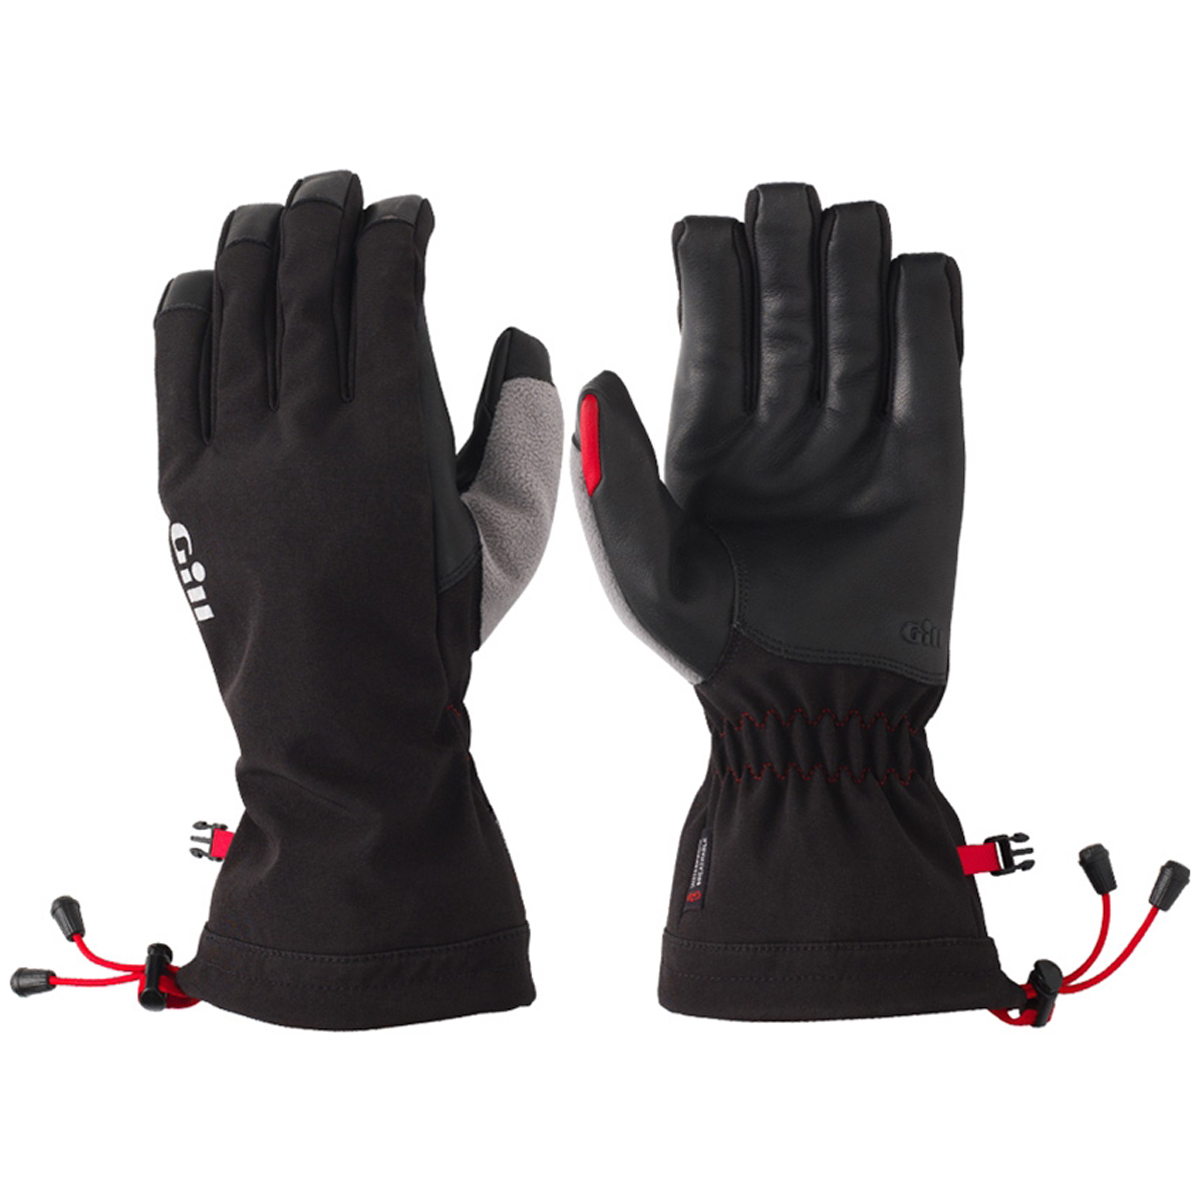 GILL WATERPROOF DRIVERS GLOVE (FG23)